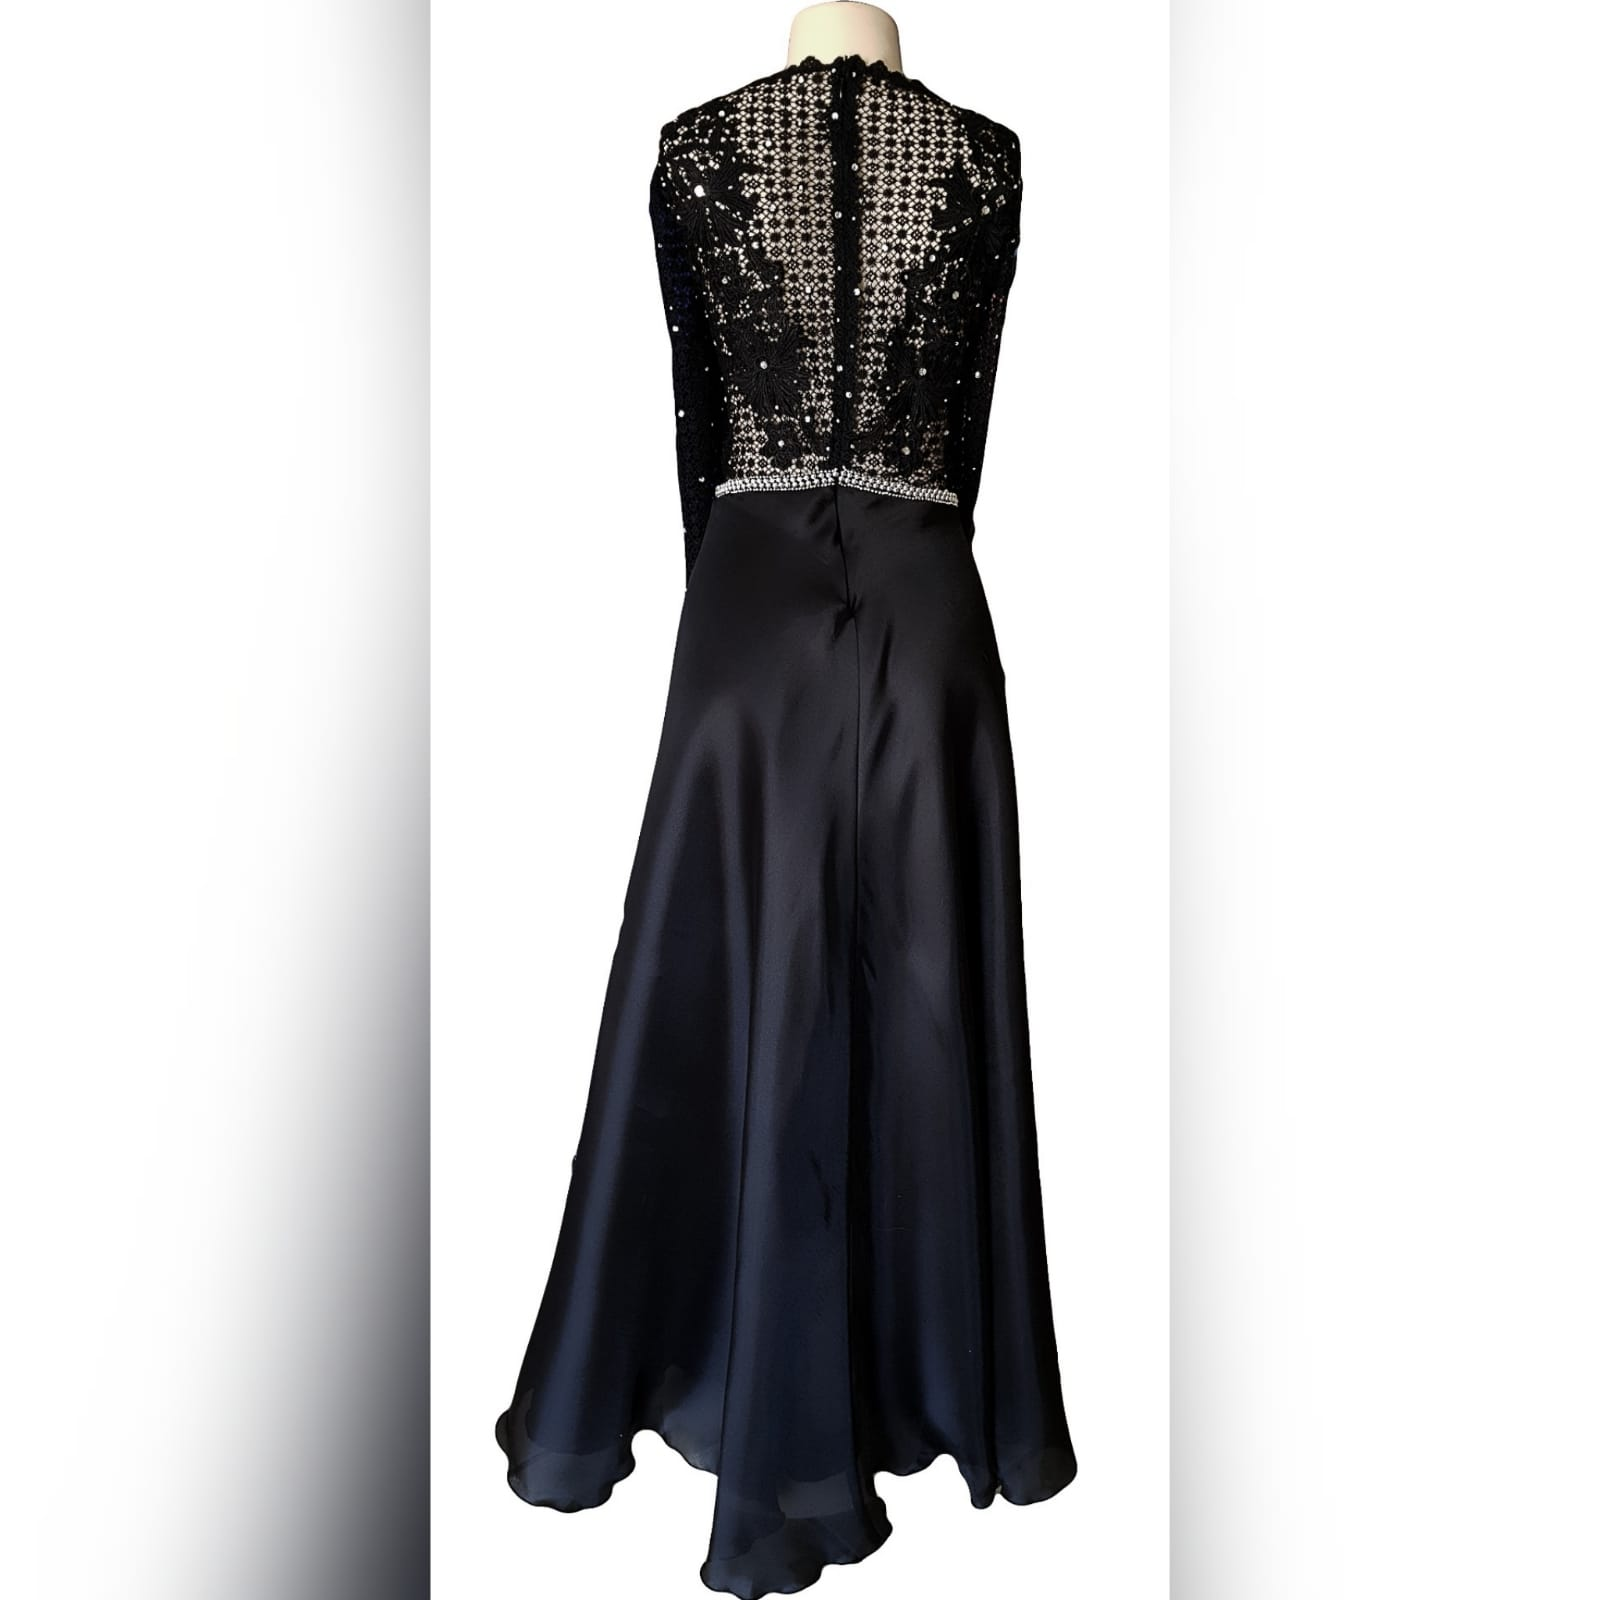 Black matric dress with a lace bodice 9 an elegant design created for a prom night. Black prom dress with a lace bodice with a slight sheer look detailed with silver beads and waist belt. Round neckline and long sleeves bottom flowy in a bridal organza